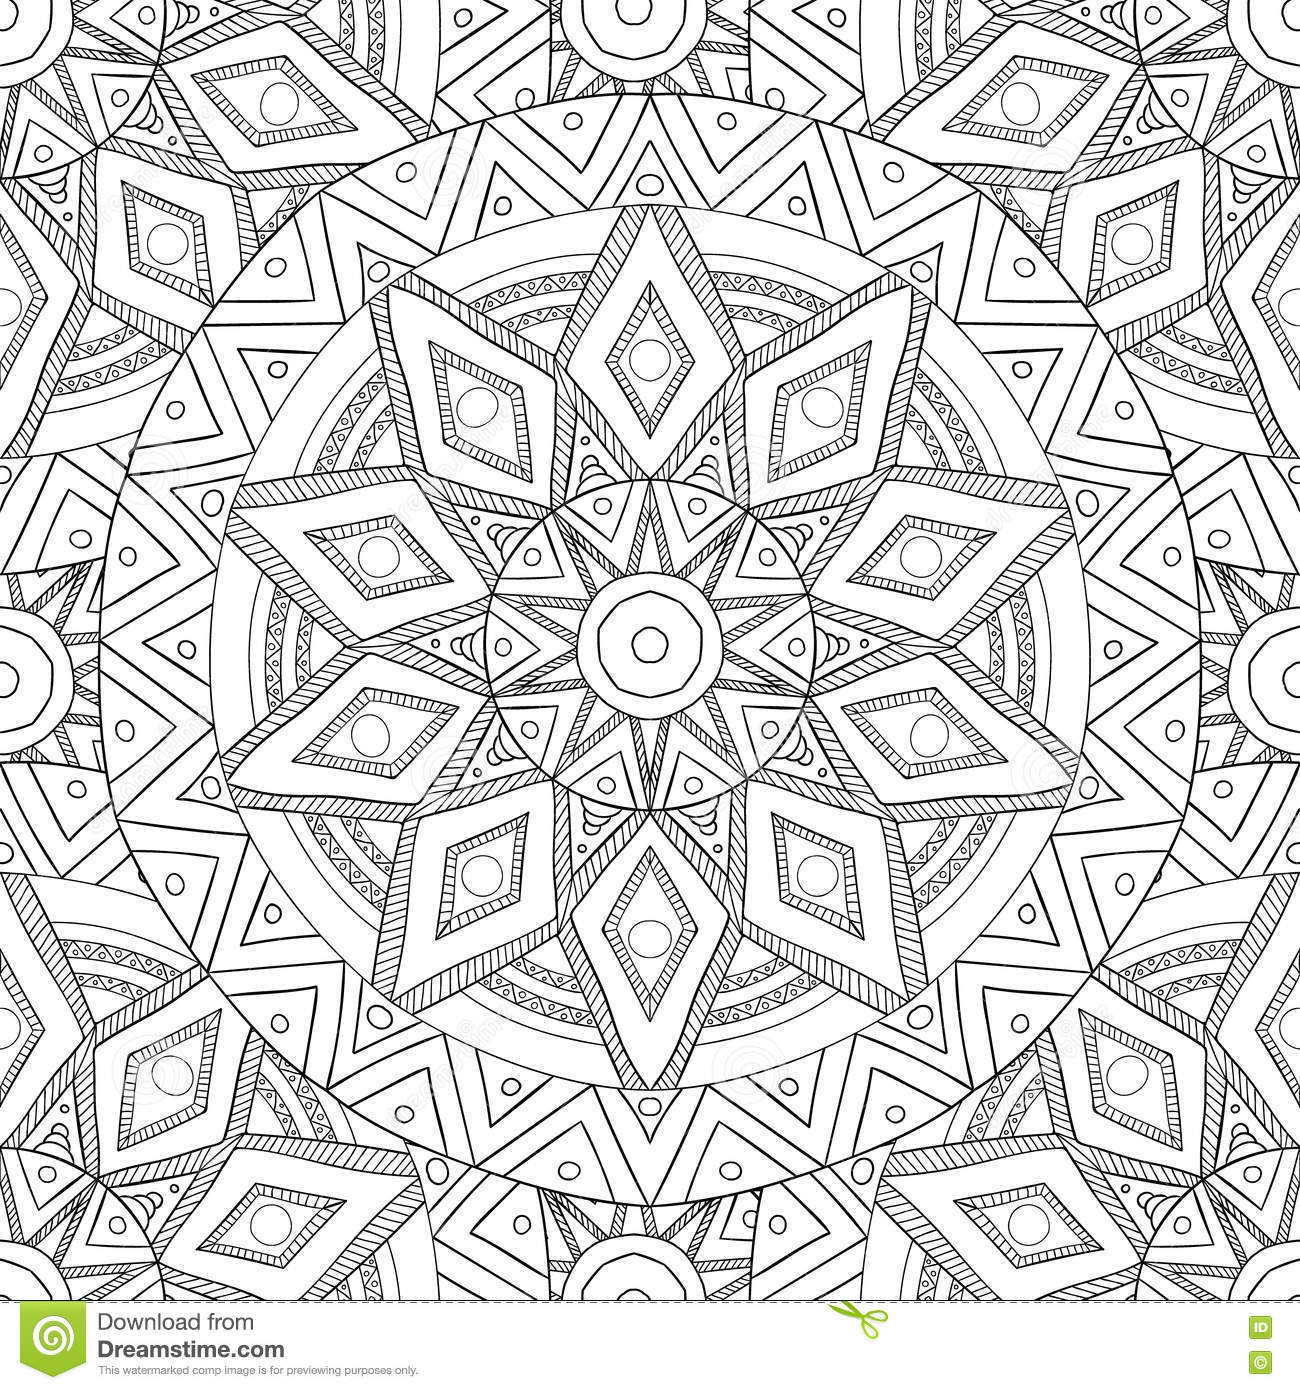 nature coloring pages for adults Coloring Pages For Adults.Decorative Hand Drawn Doodle Nature  nature coloring pages for adults